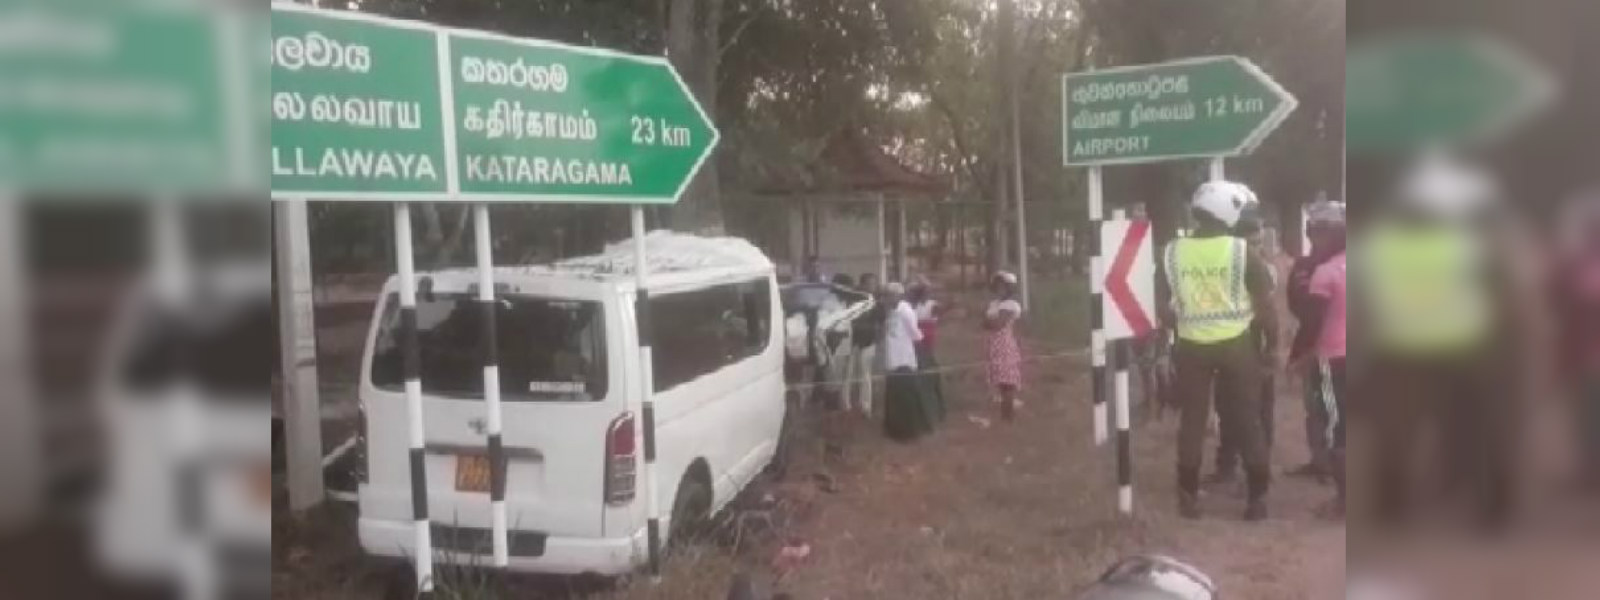 6 dead and 3 injured in Lunugamwehera motor accident